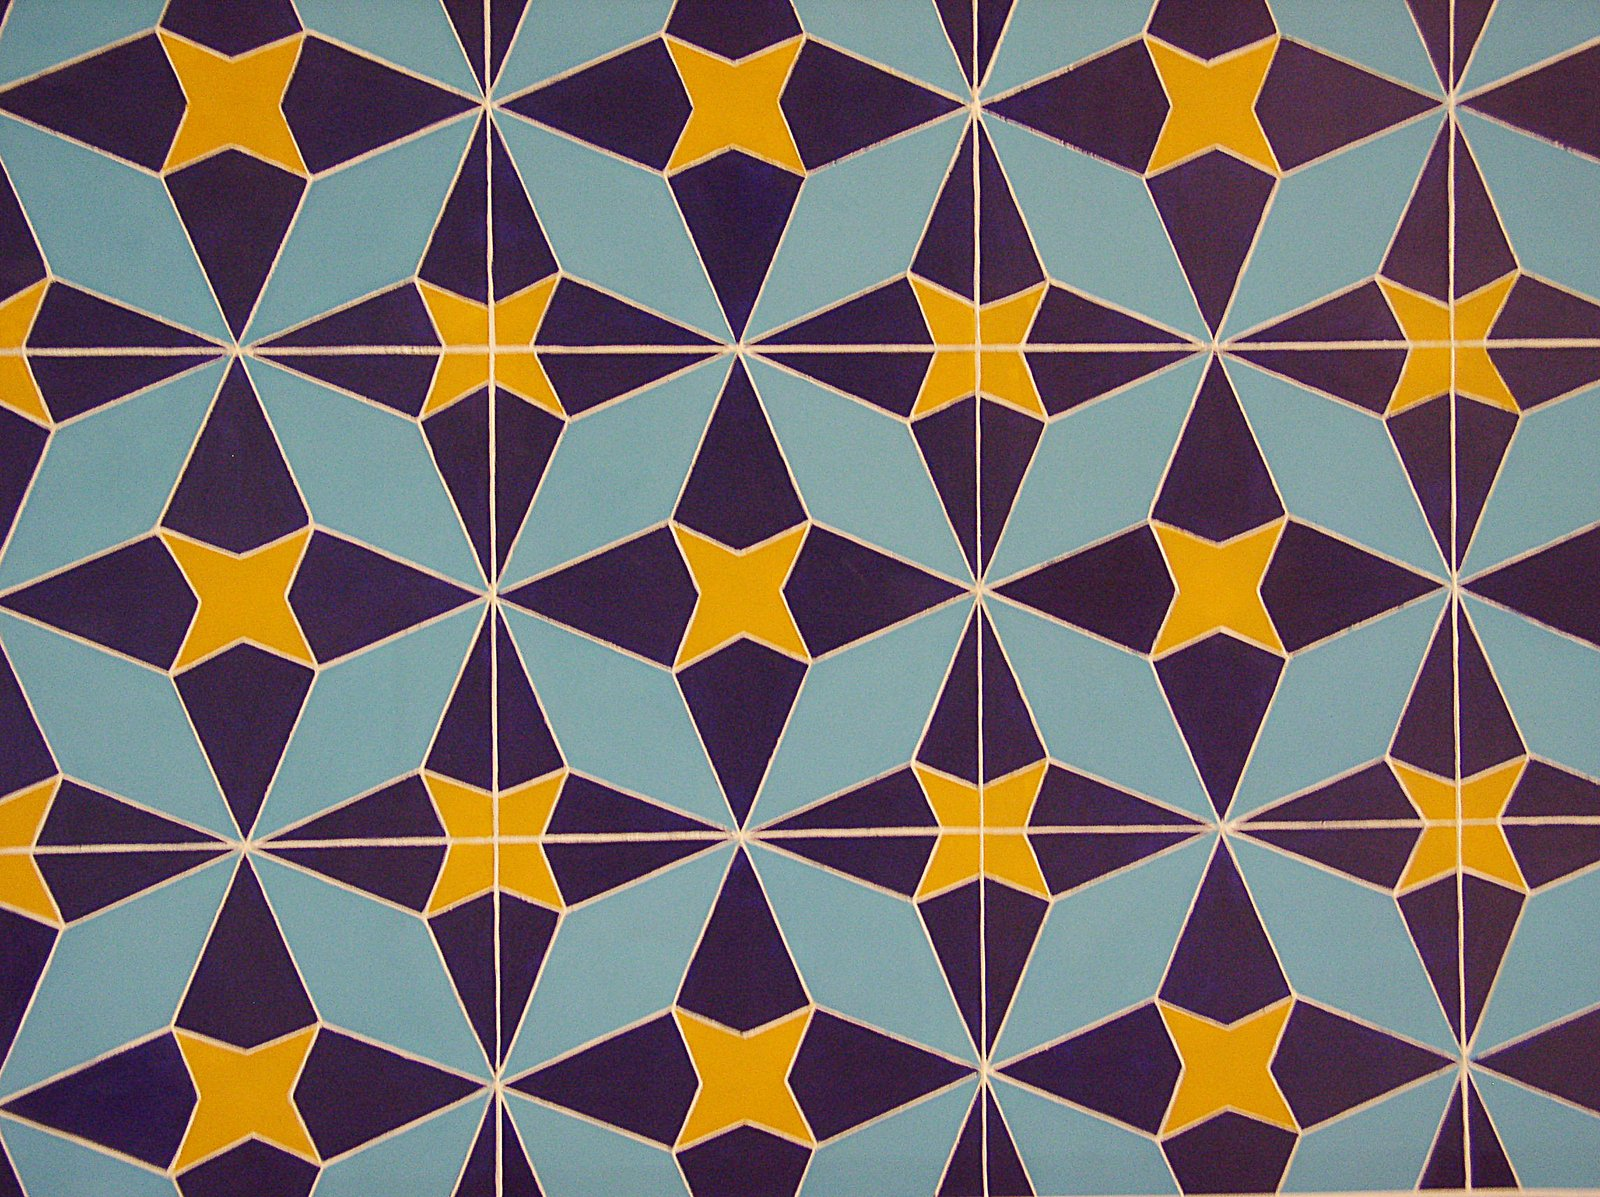 Free Arabic Pattern Stock Photo Freeimages Com